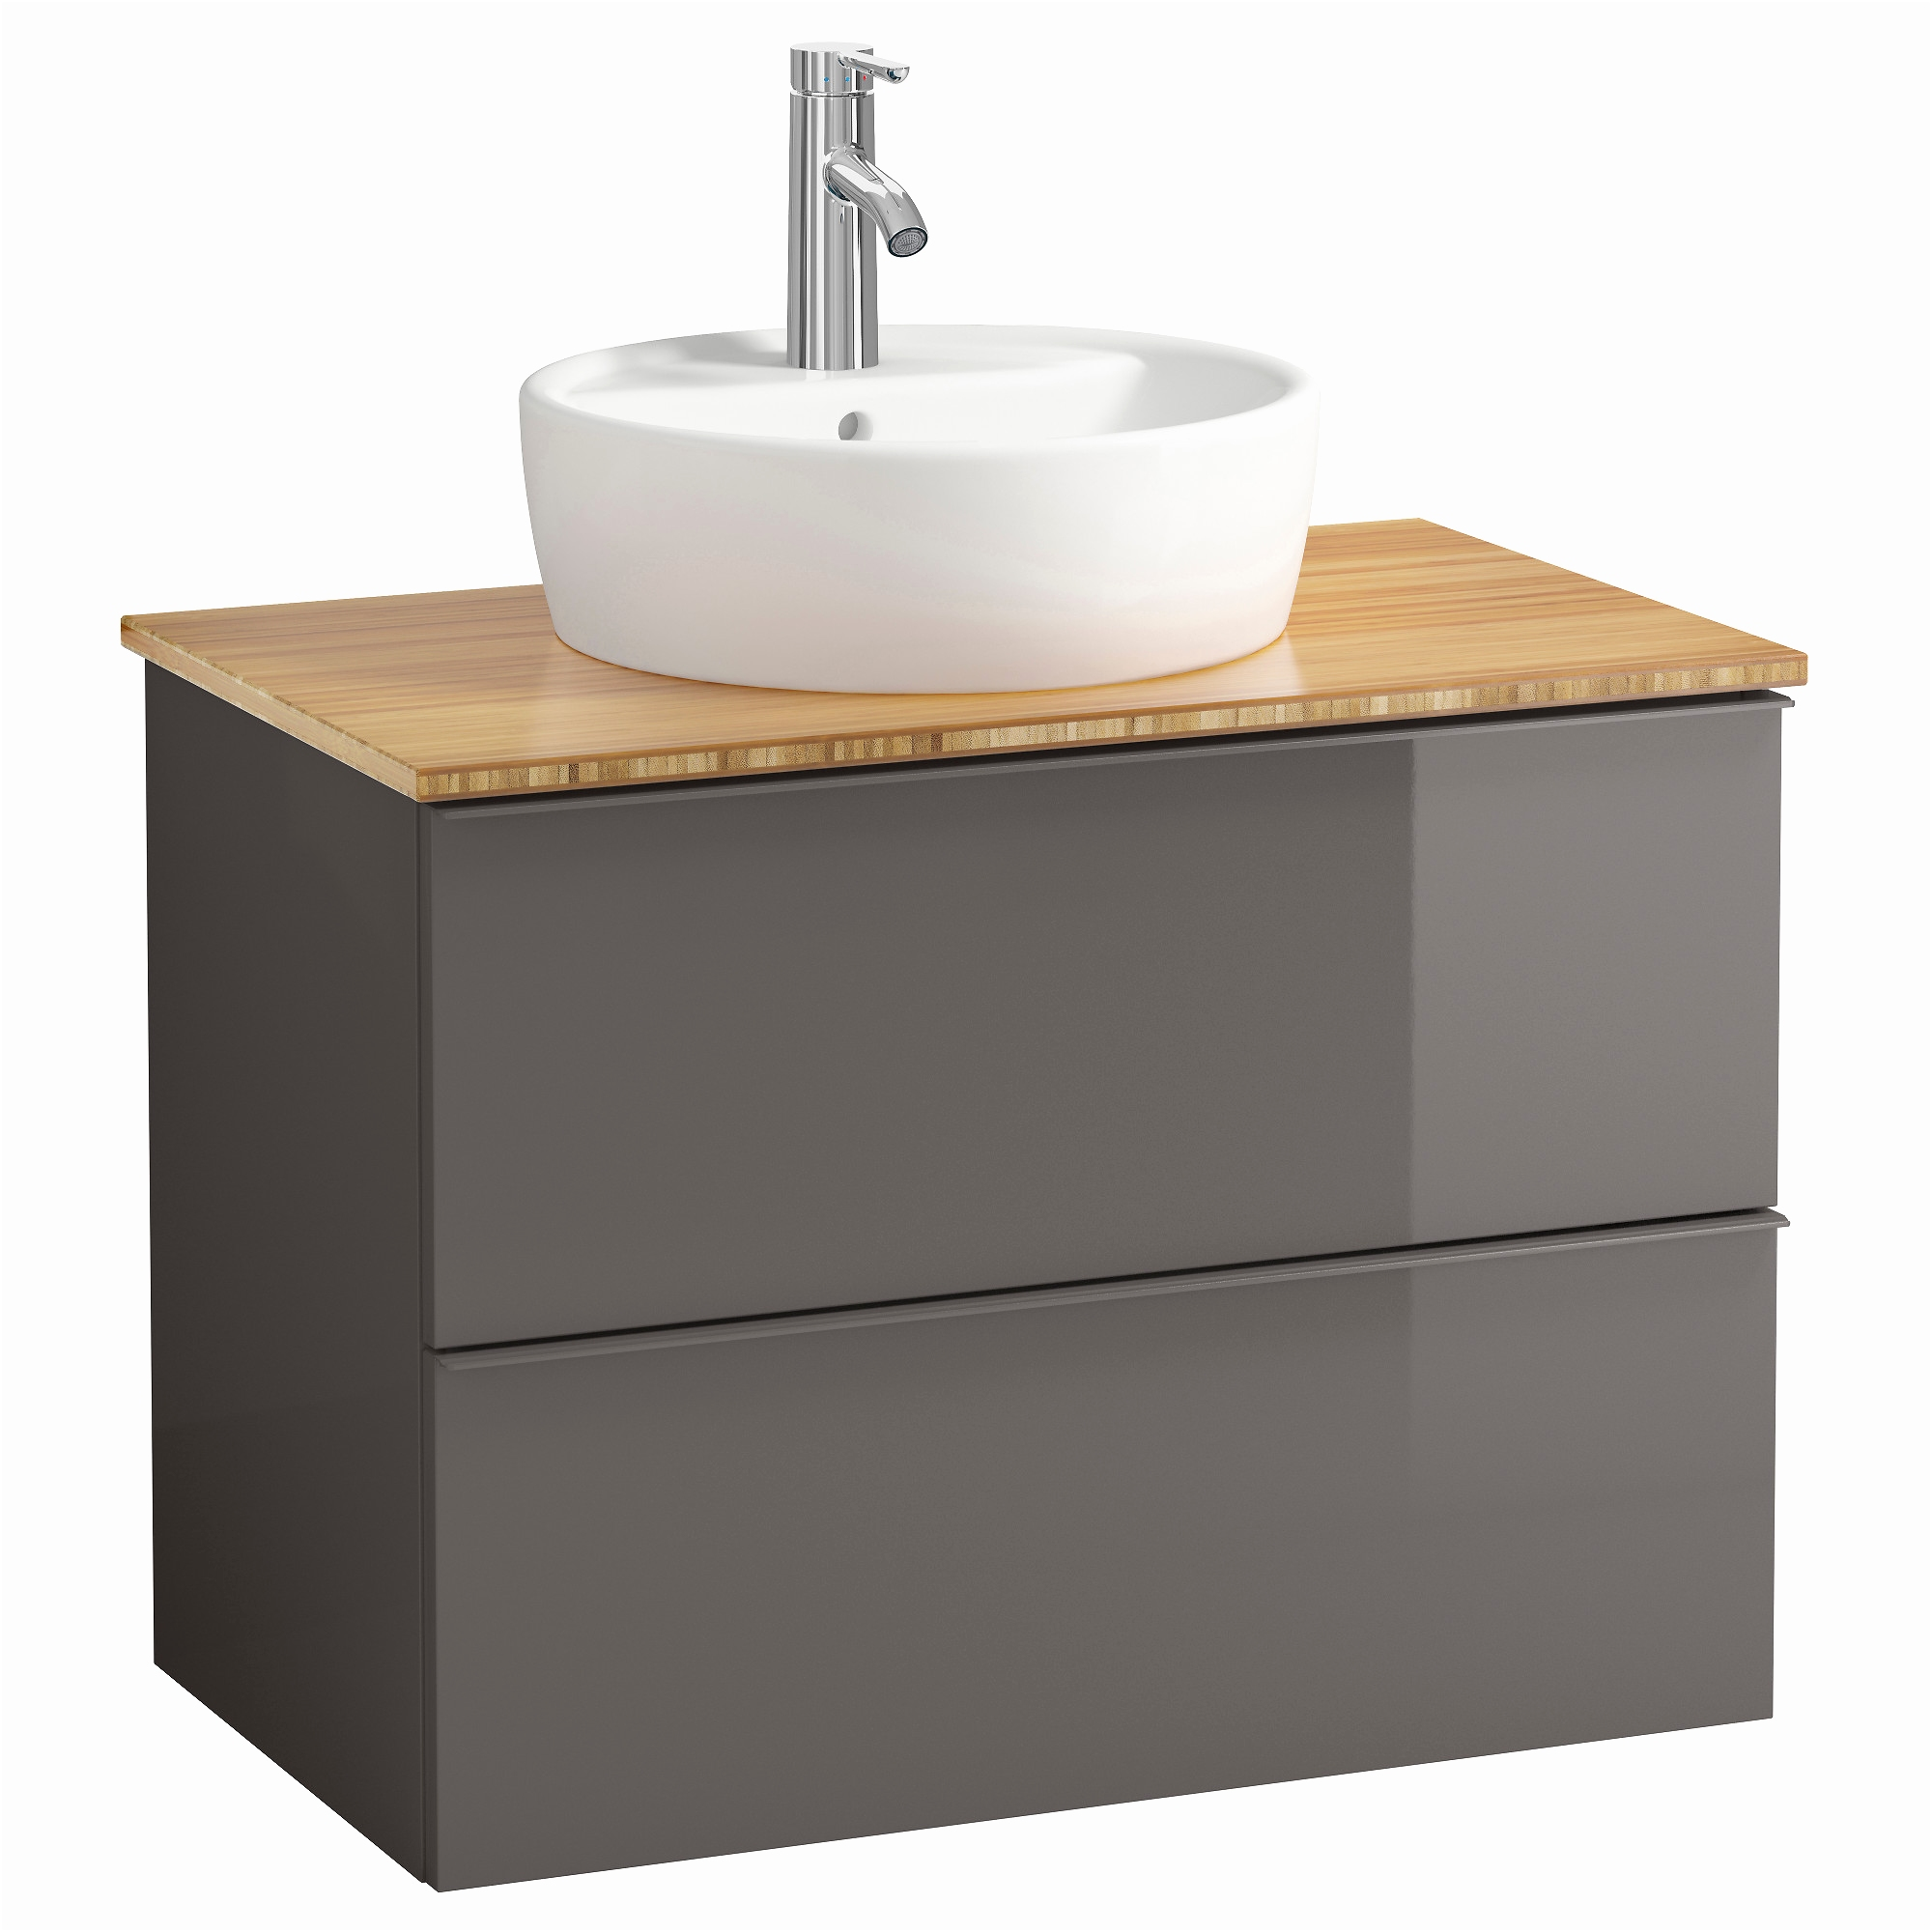 Menards Sinks | Slop Sink | Kitchen Sink Dimensions